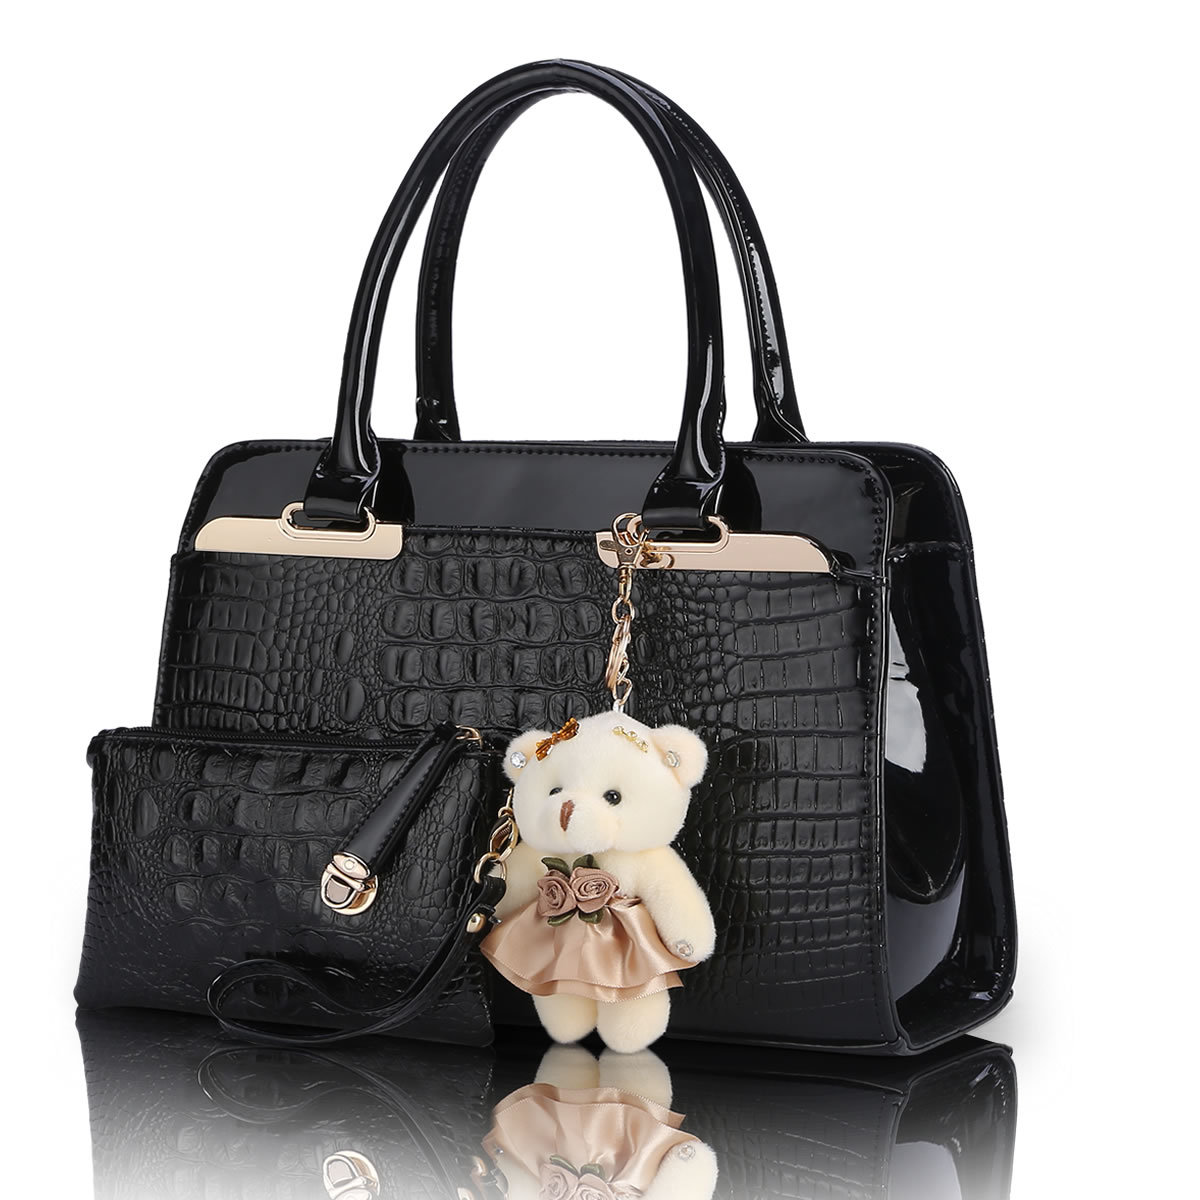 2 bags/set with bear toy  European and American fashion casual alligator pattern handbag  patent PU leather shoulder bag Q5